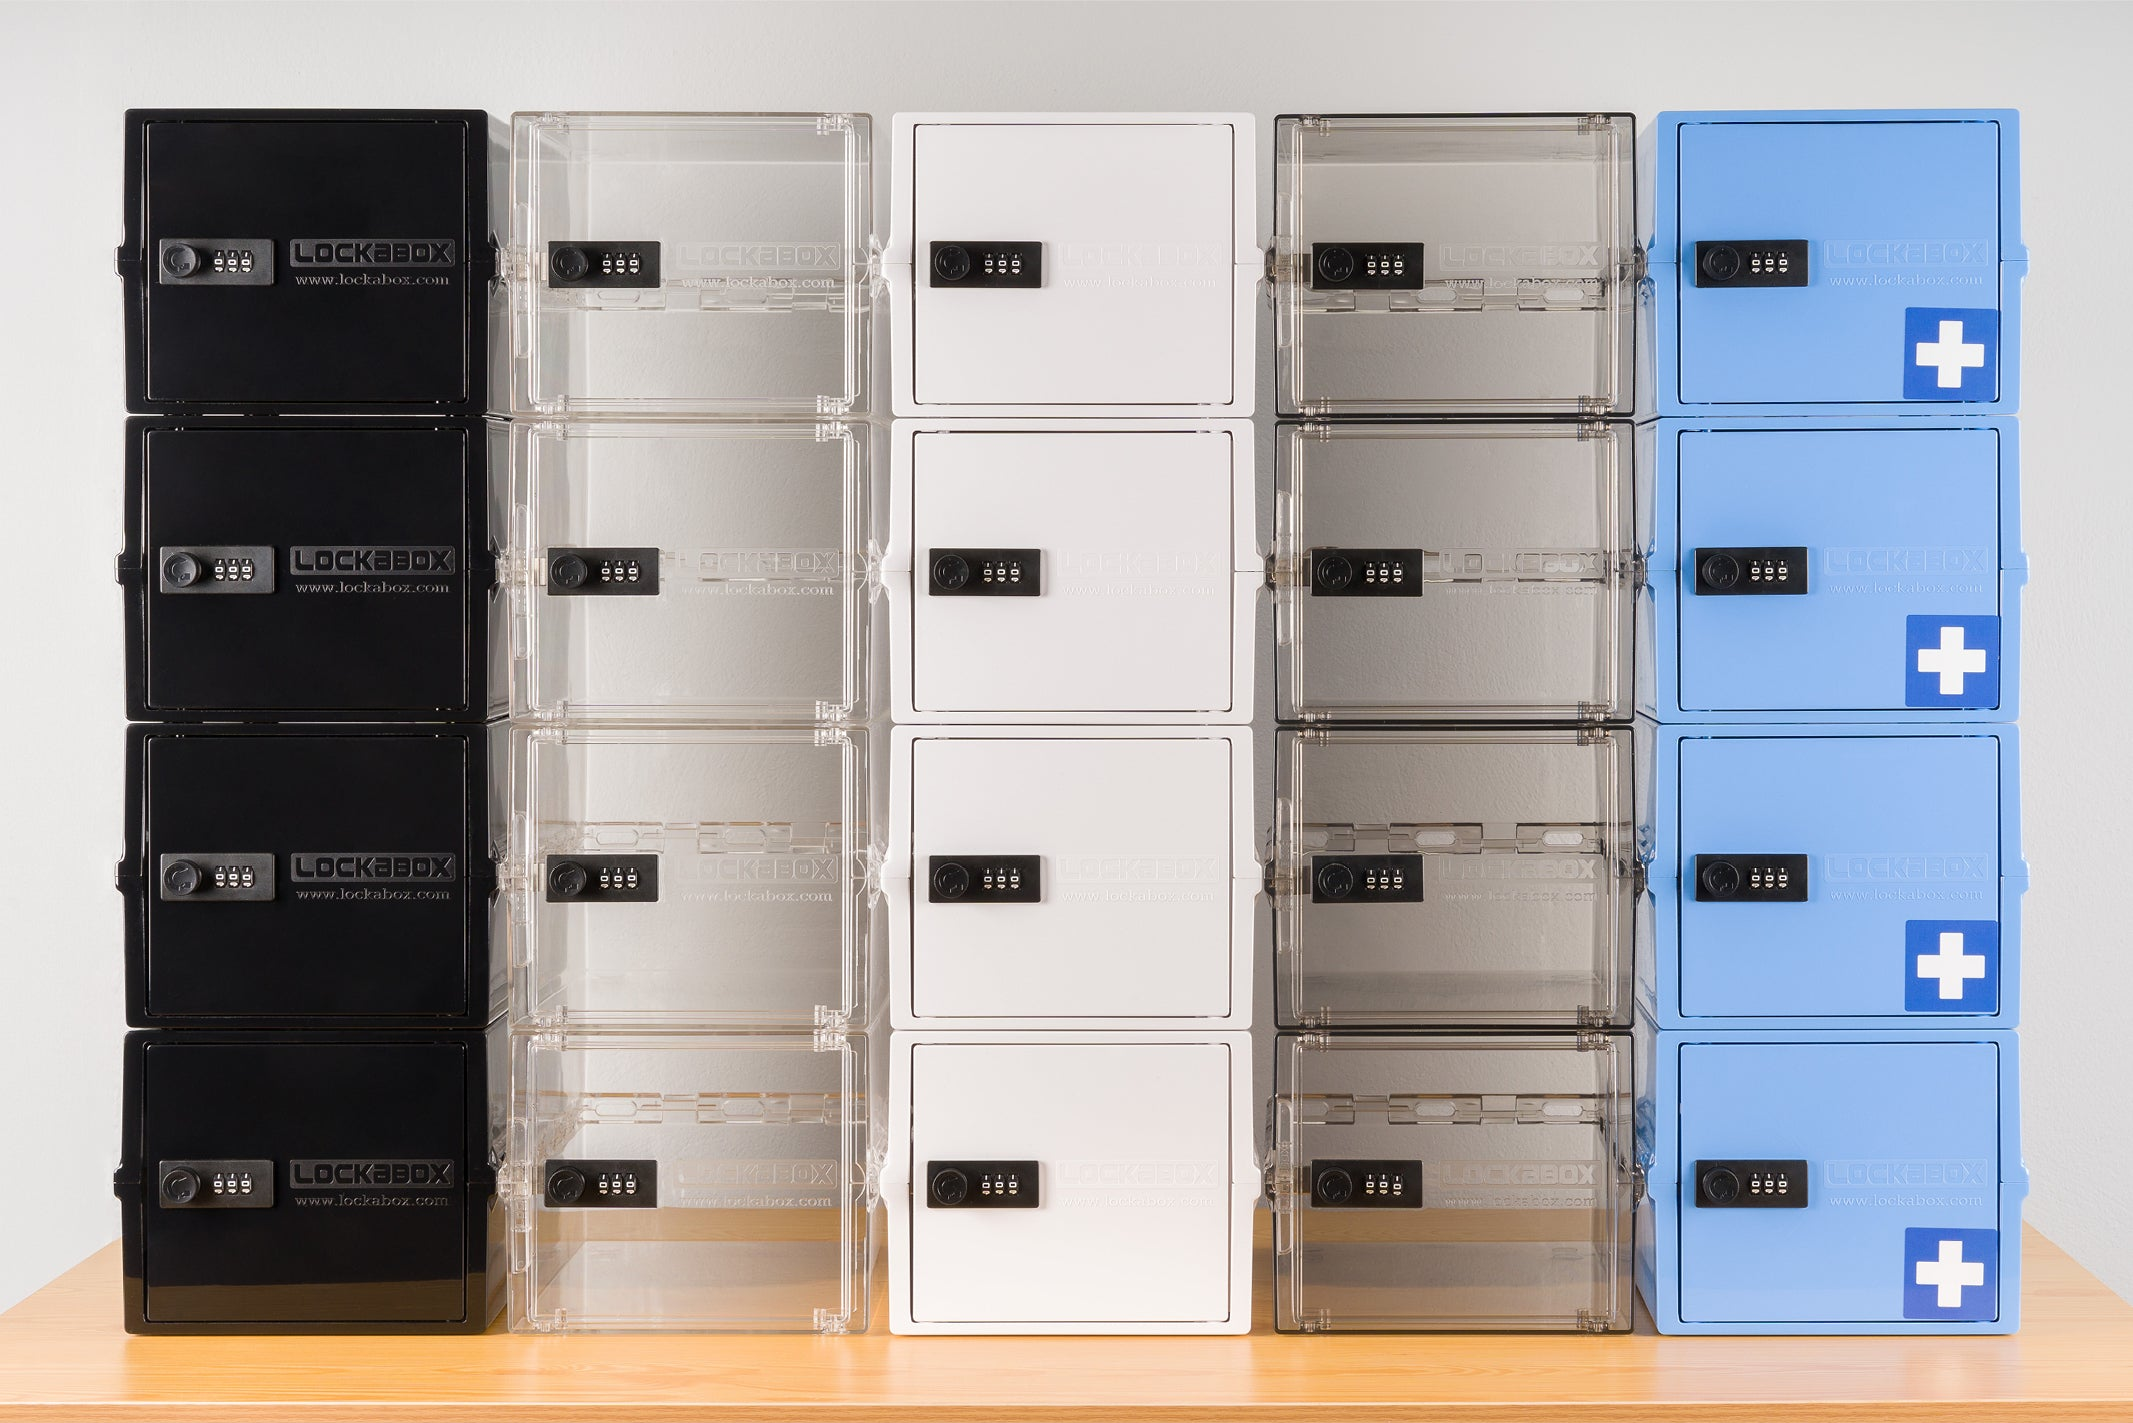 Lockable Storage Box Stacked In A Modular System. Mix and Match Portable Stacking System